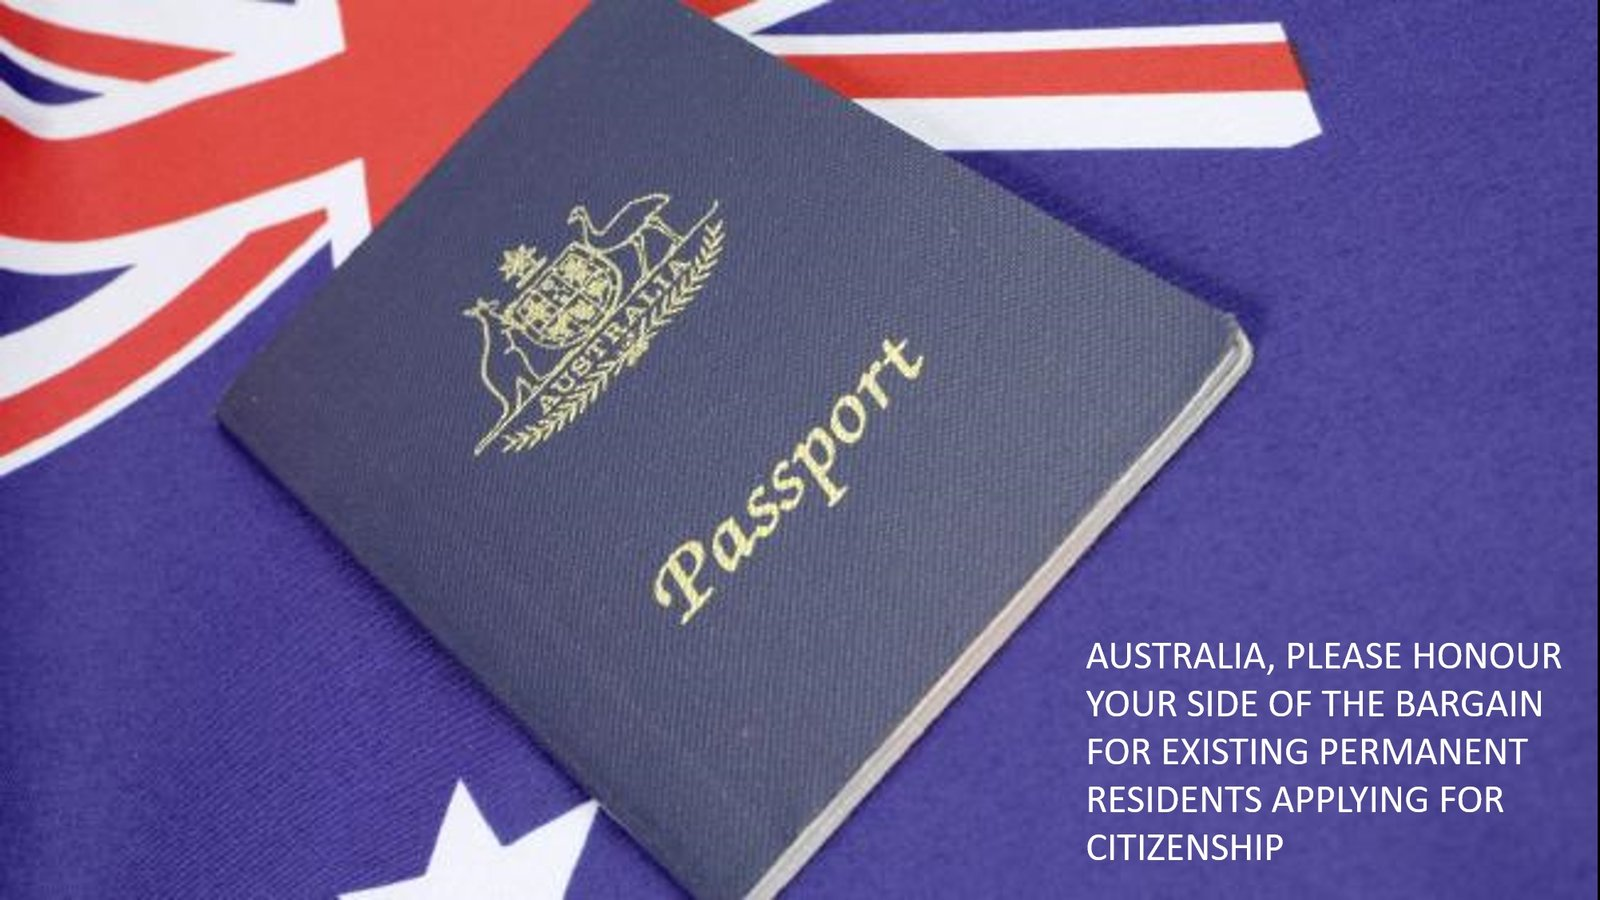 Any Changes To The Citizenship Application Process Going Forwards Are  Absolutely Australia's Decision To Make, But We Ask That Malcom Turnbull  And The